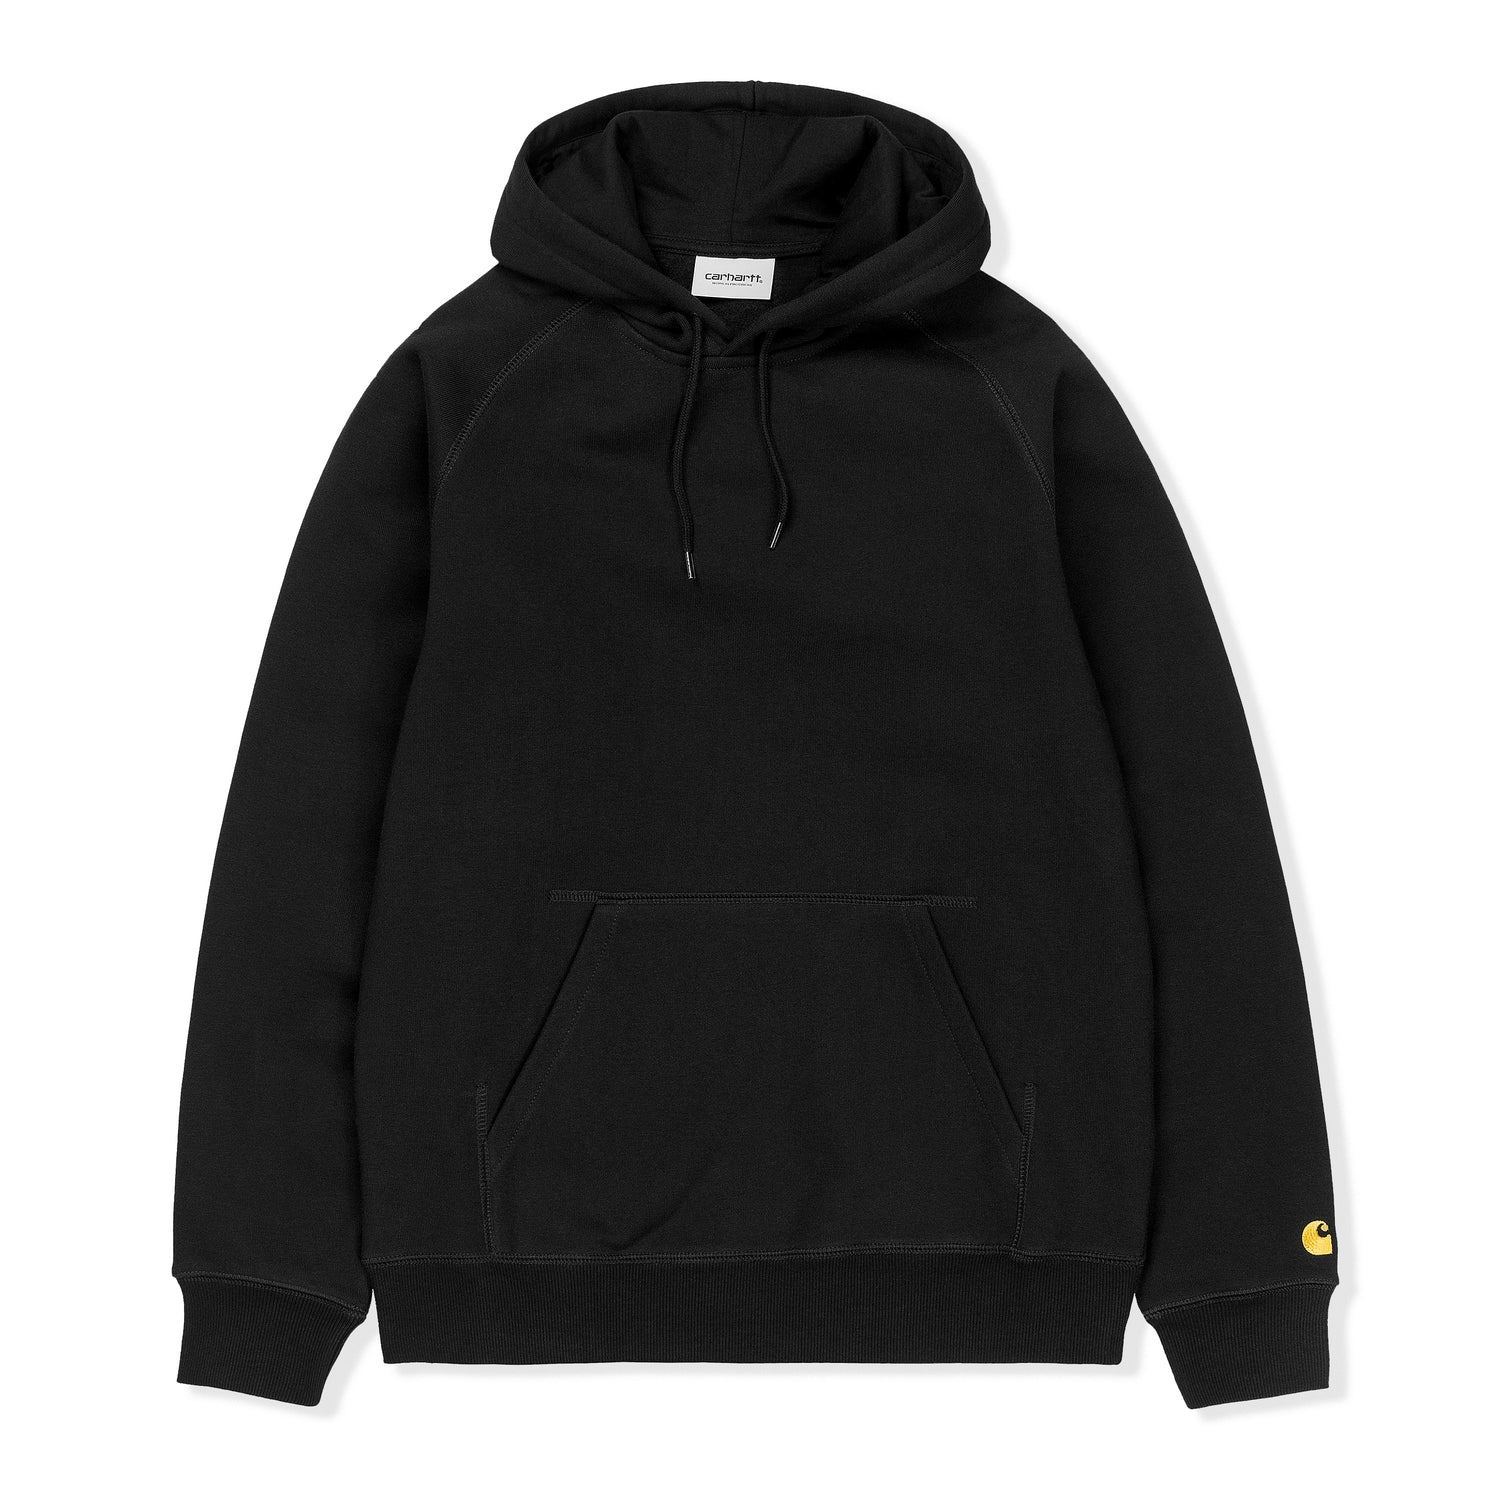 Chase Pullover, Black